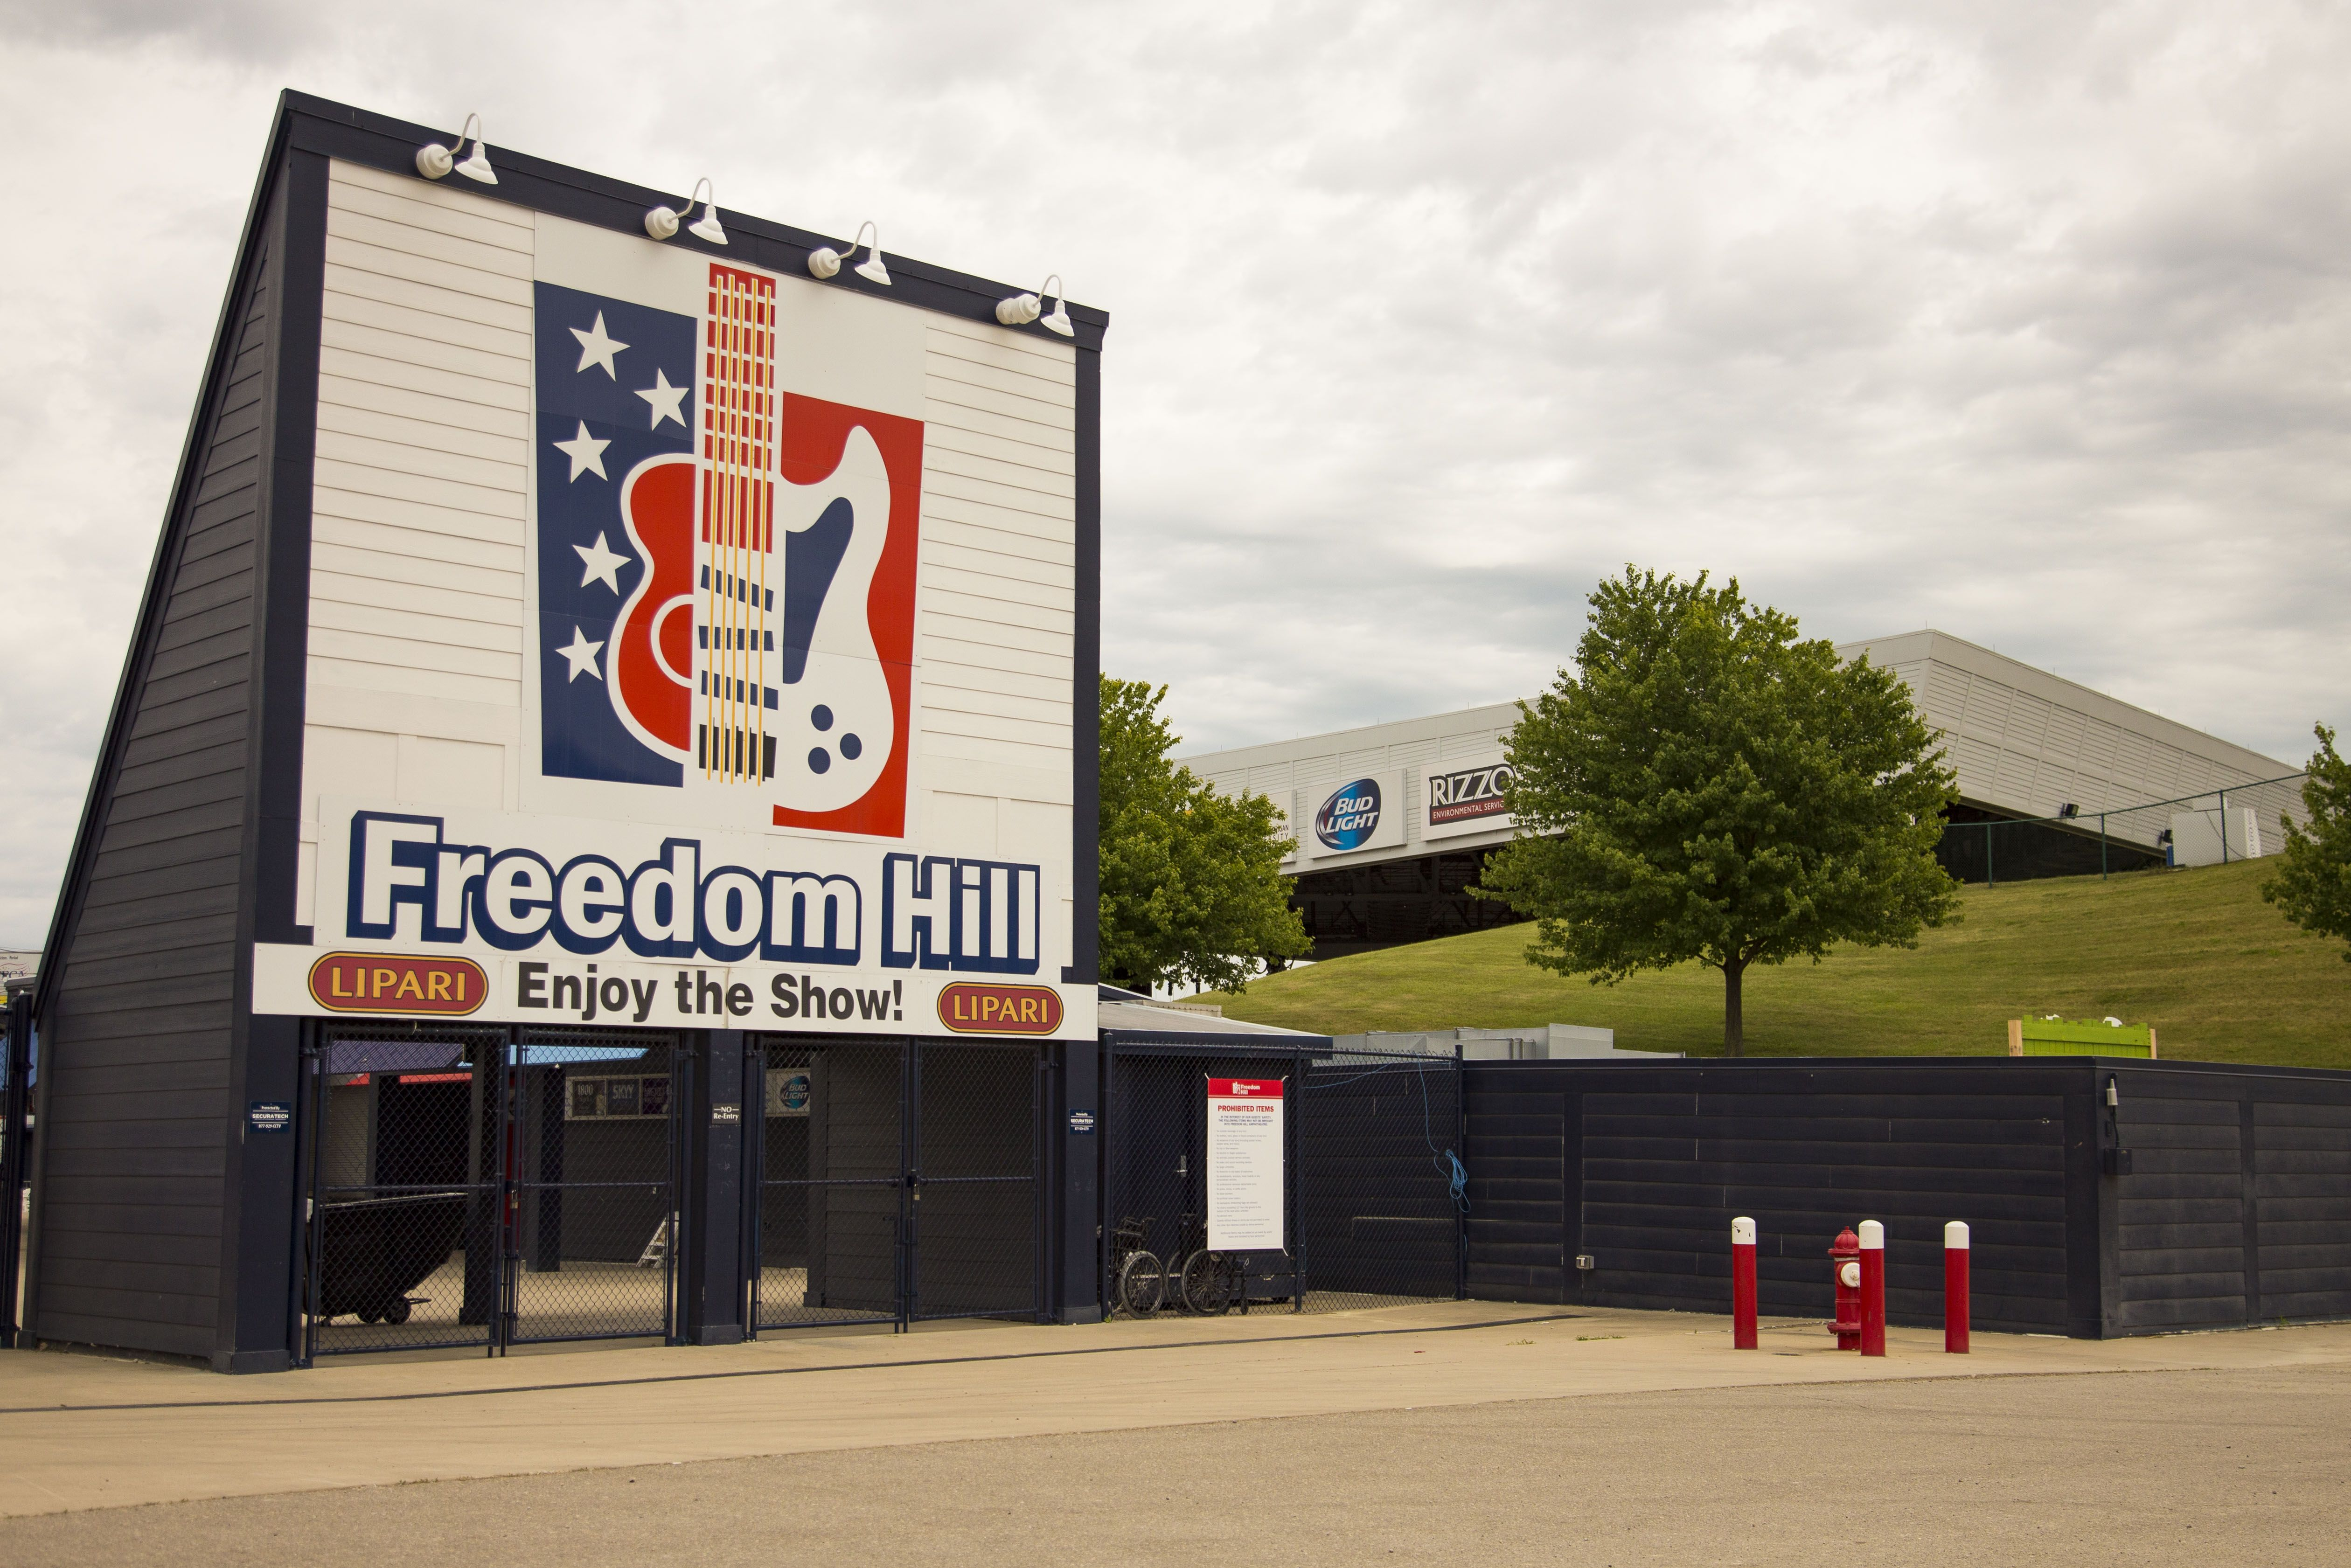 Freedom Hill Is A County Park Featuring Picnic Areas A Playground And More But It S Most Known For Concerts At The Large Amp County Park Lipari Picnic Area